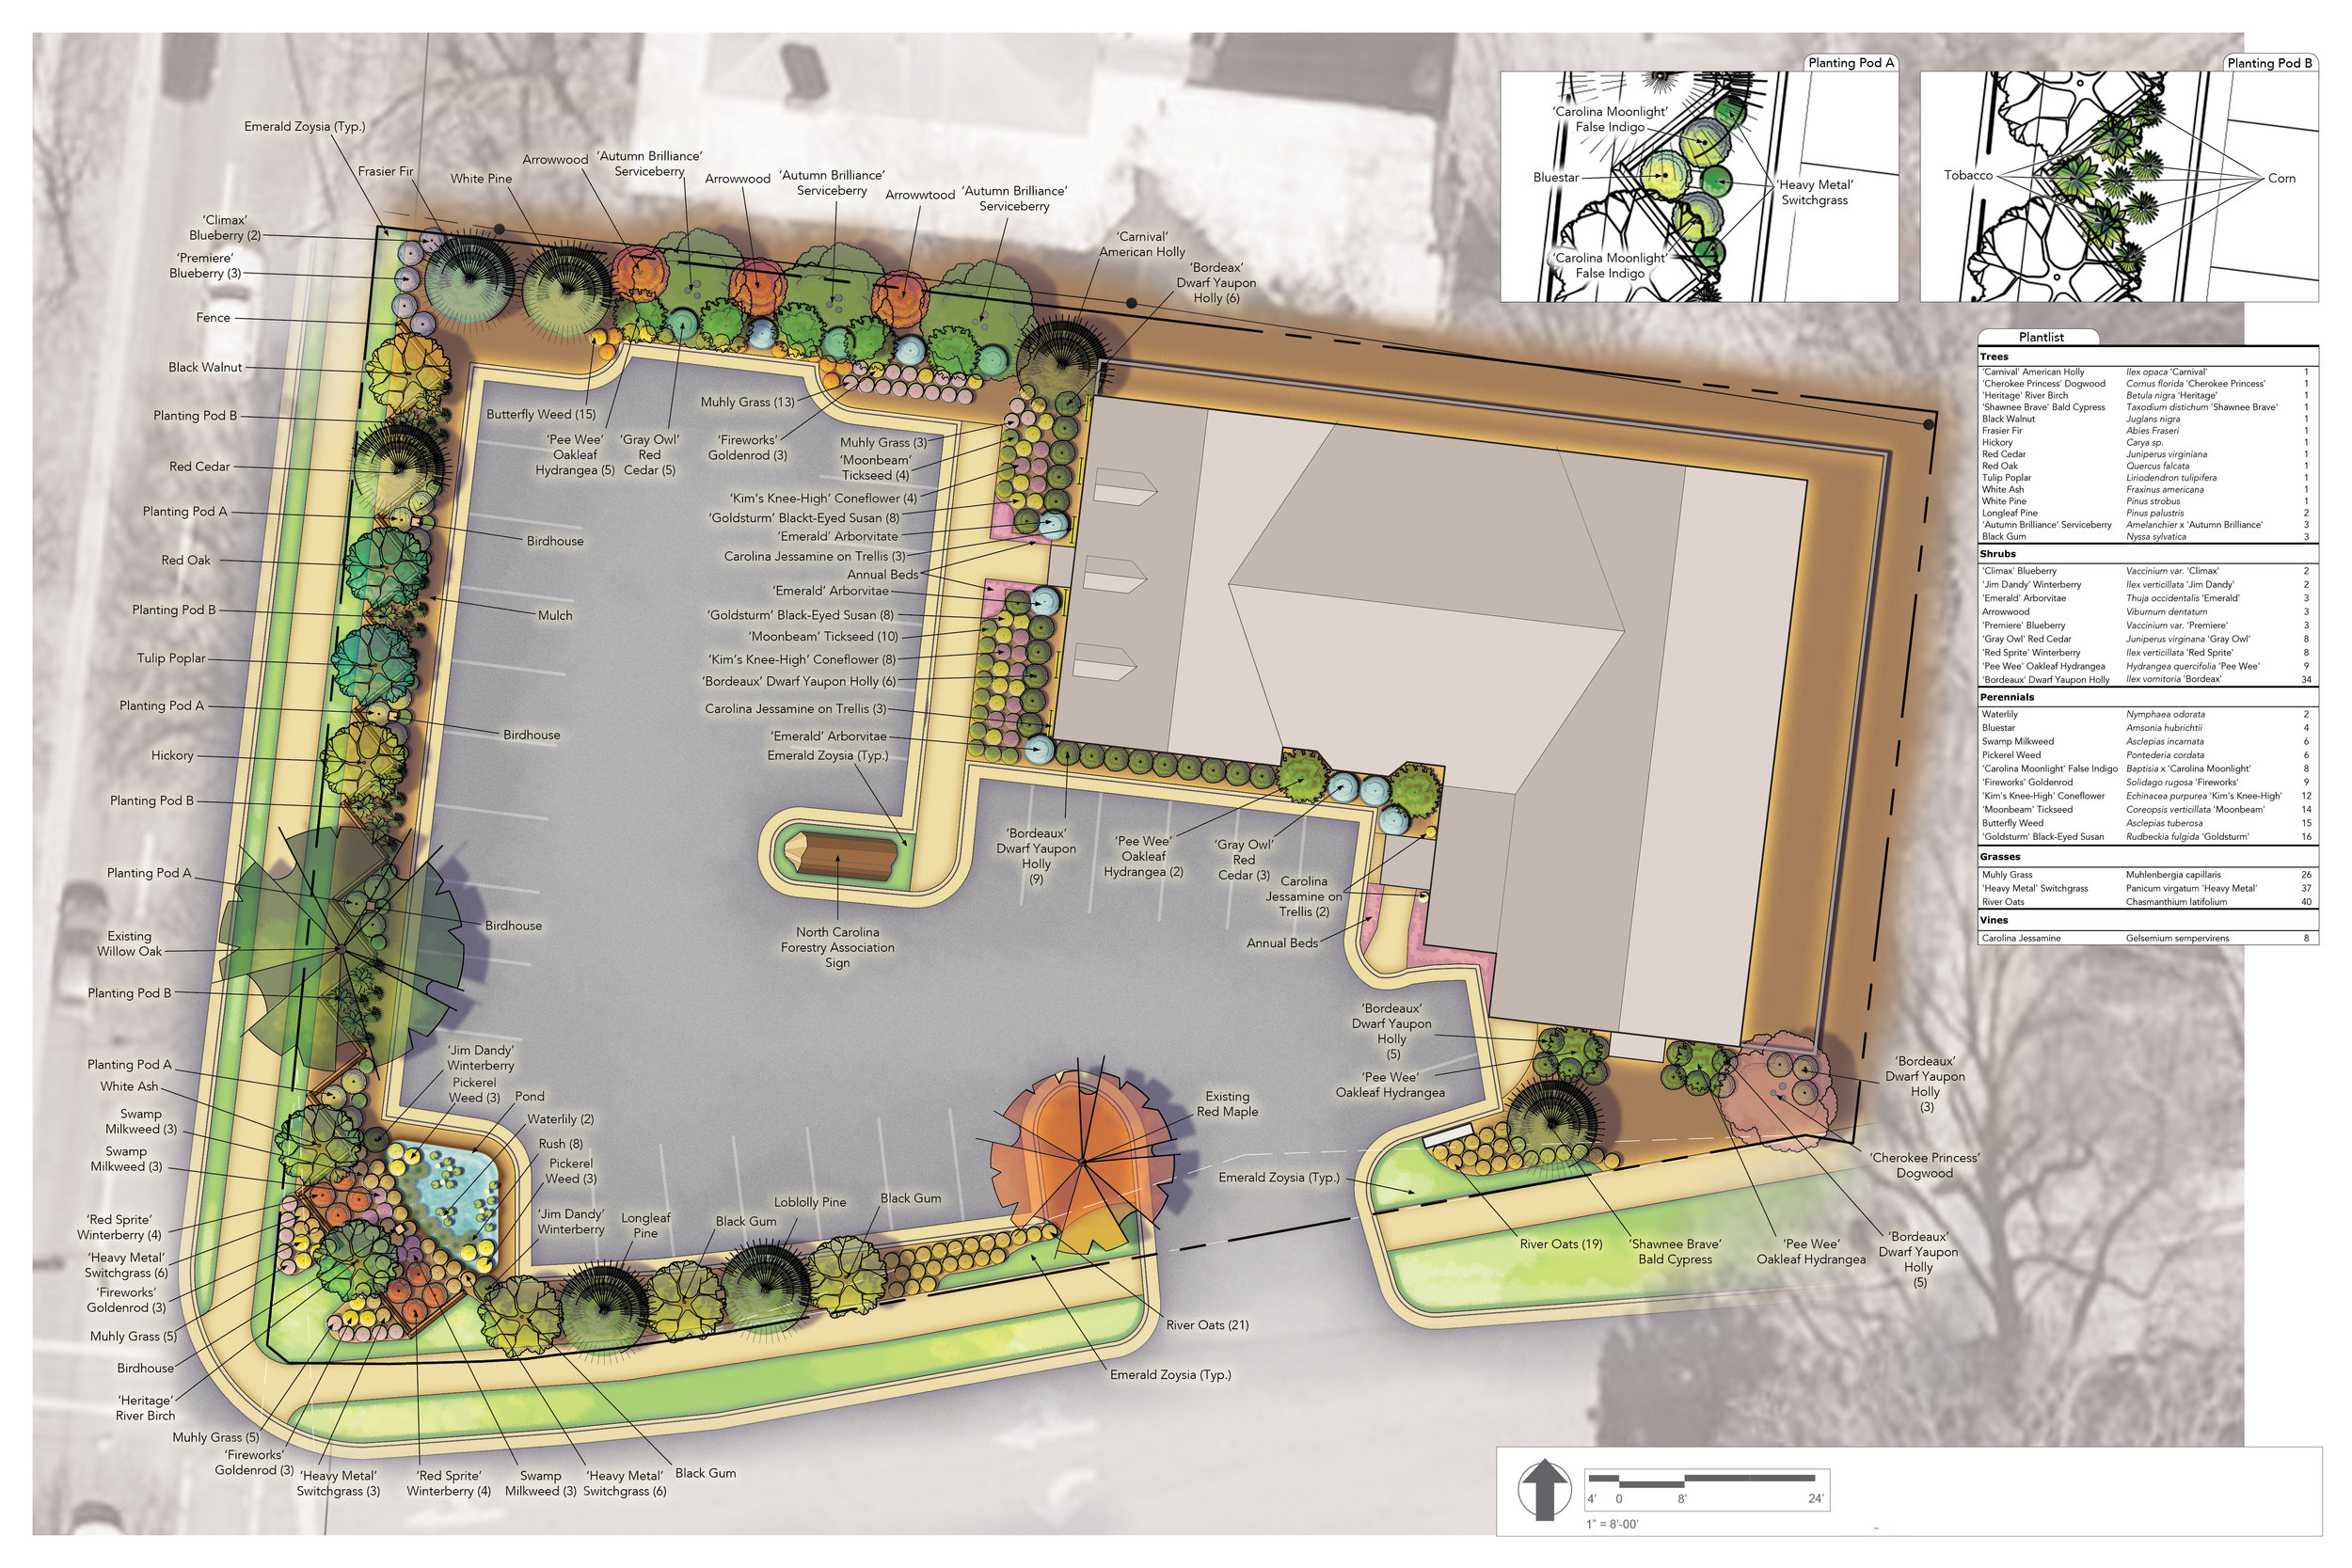 Featured above is a landscape design for the North Carolina Forestry Association headquarters featuring trees, shrubs, grasses and herbaceous perennials historically native to the state. This didactic landscape is arranged from mountain to sea and serves nearby schools as a living classroom. The trees specified in the design are to be cut down and replanted every eight years to demonstrate forestry techniques.